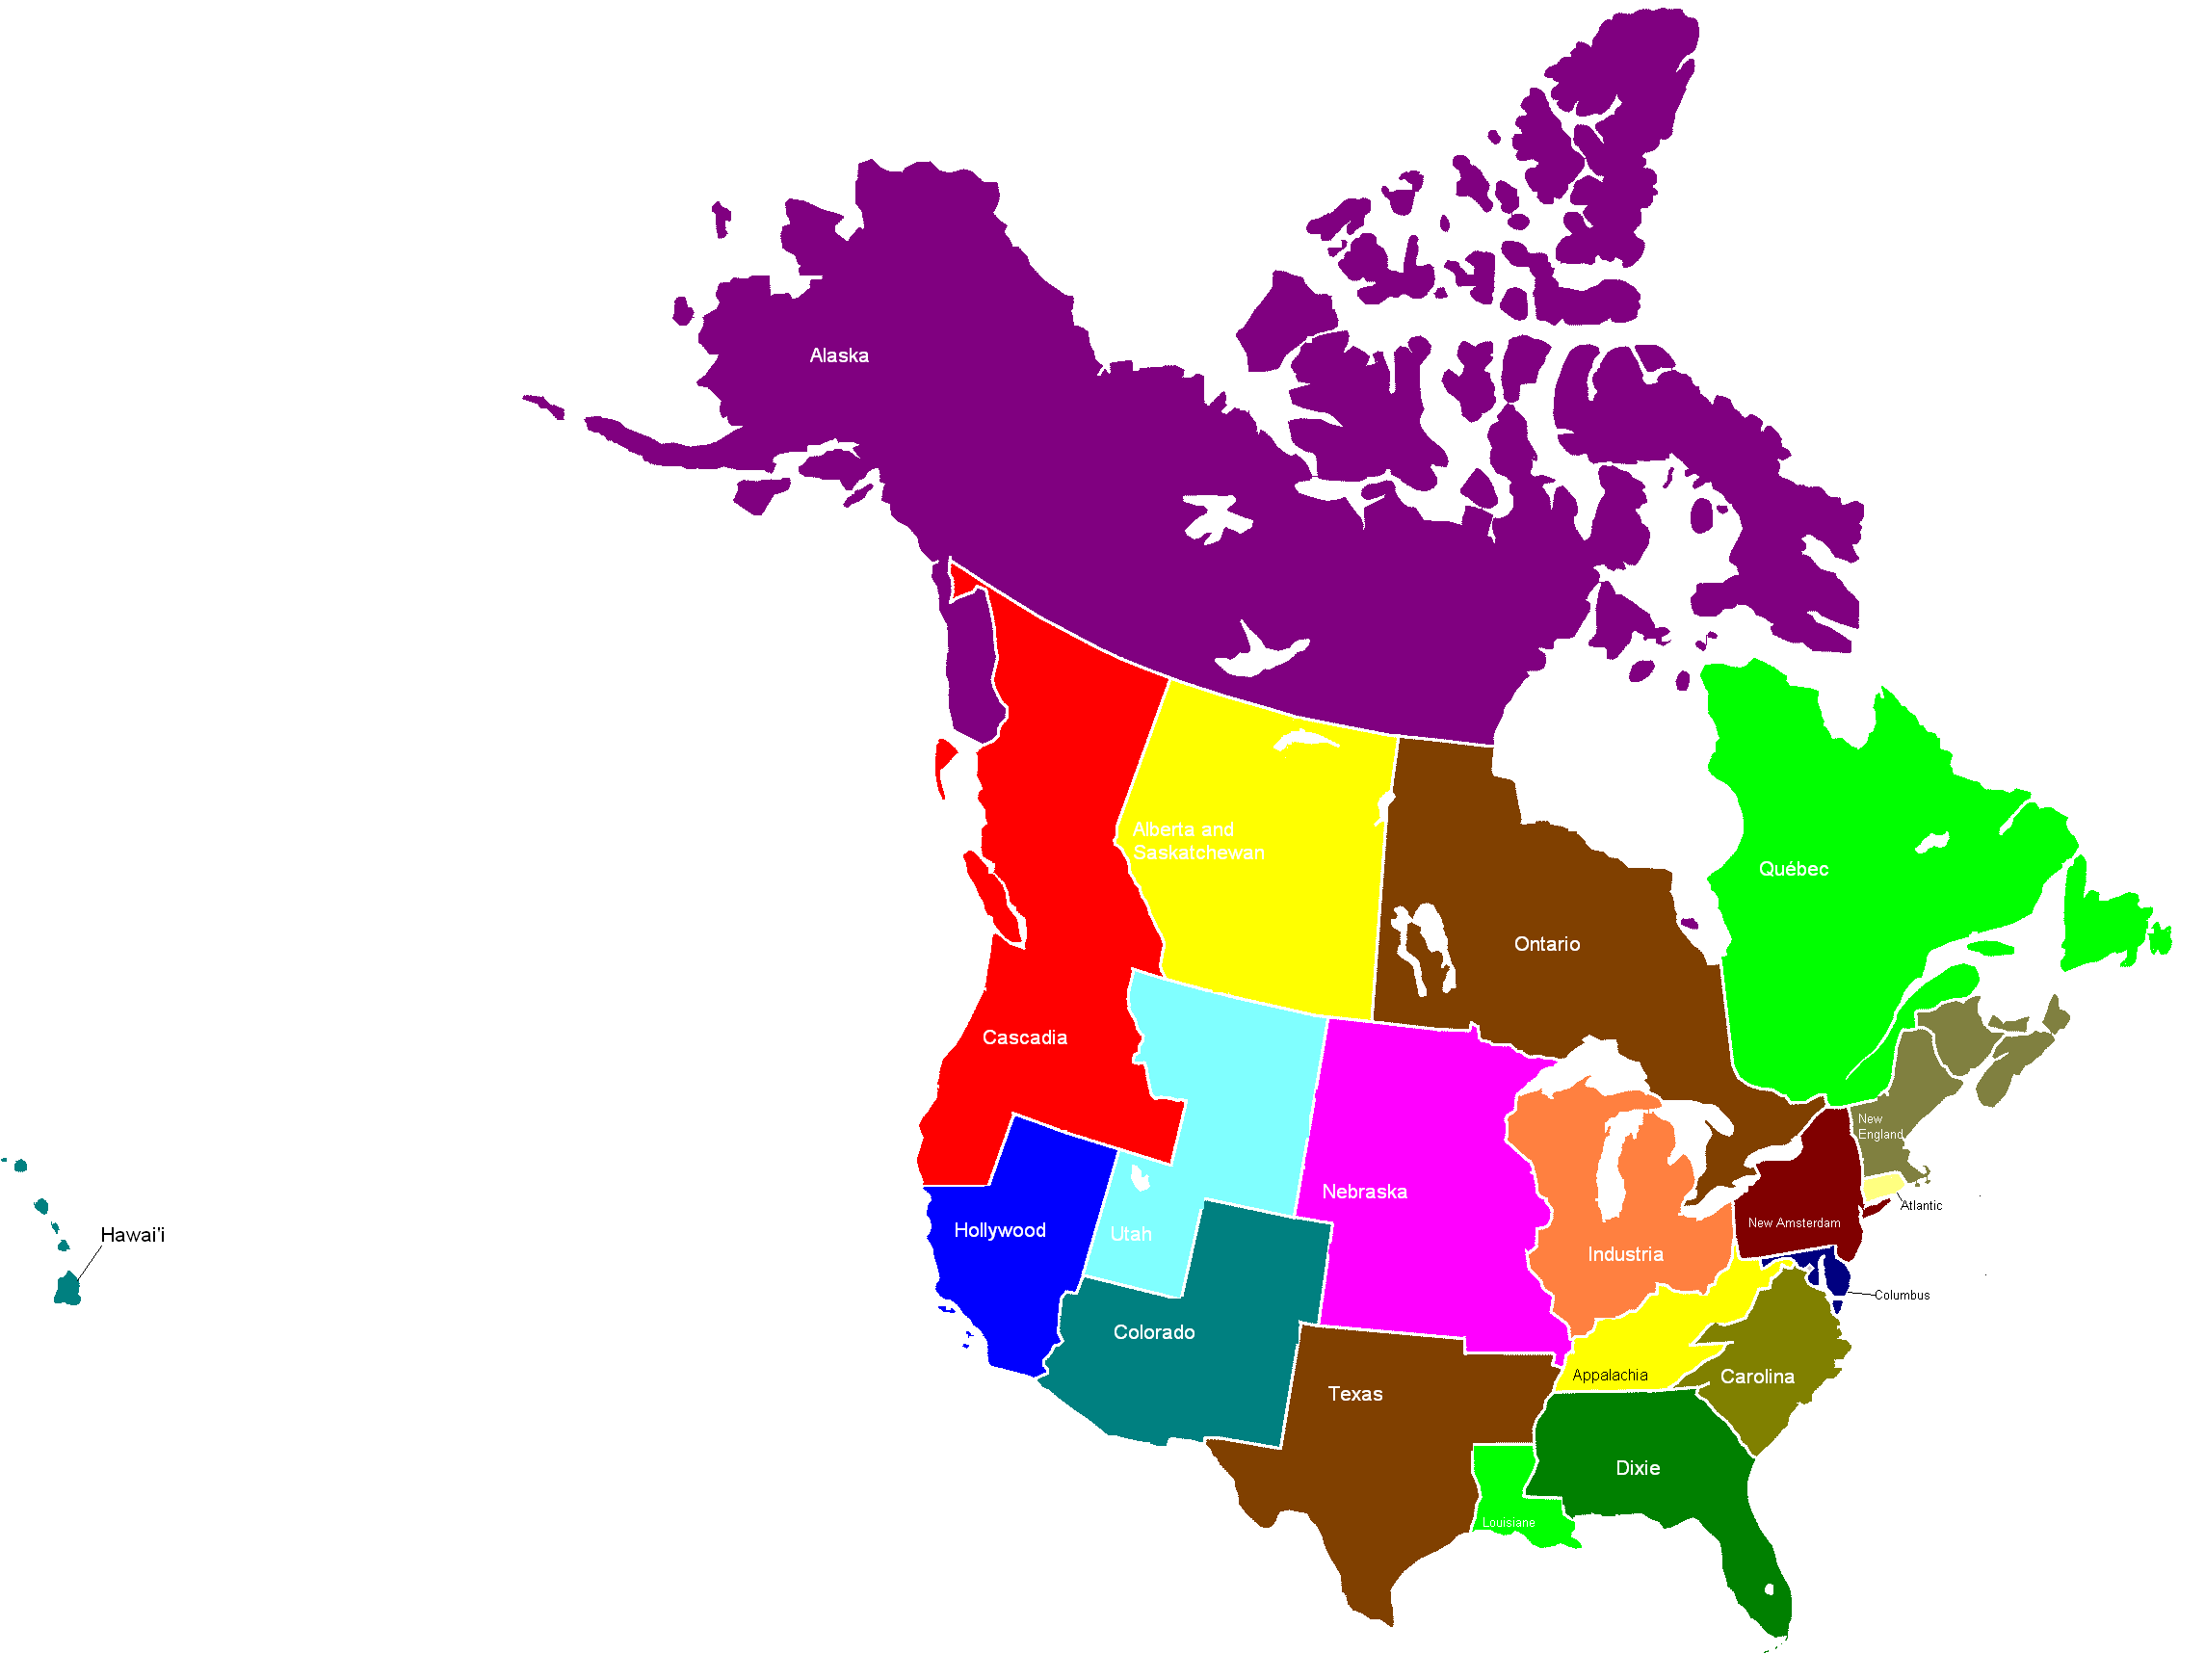 US And Canadian Provinces Alternate North America Maps Pinterest - United states and canada map